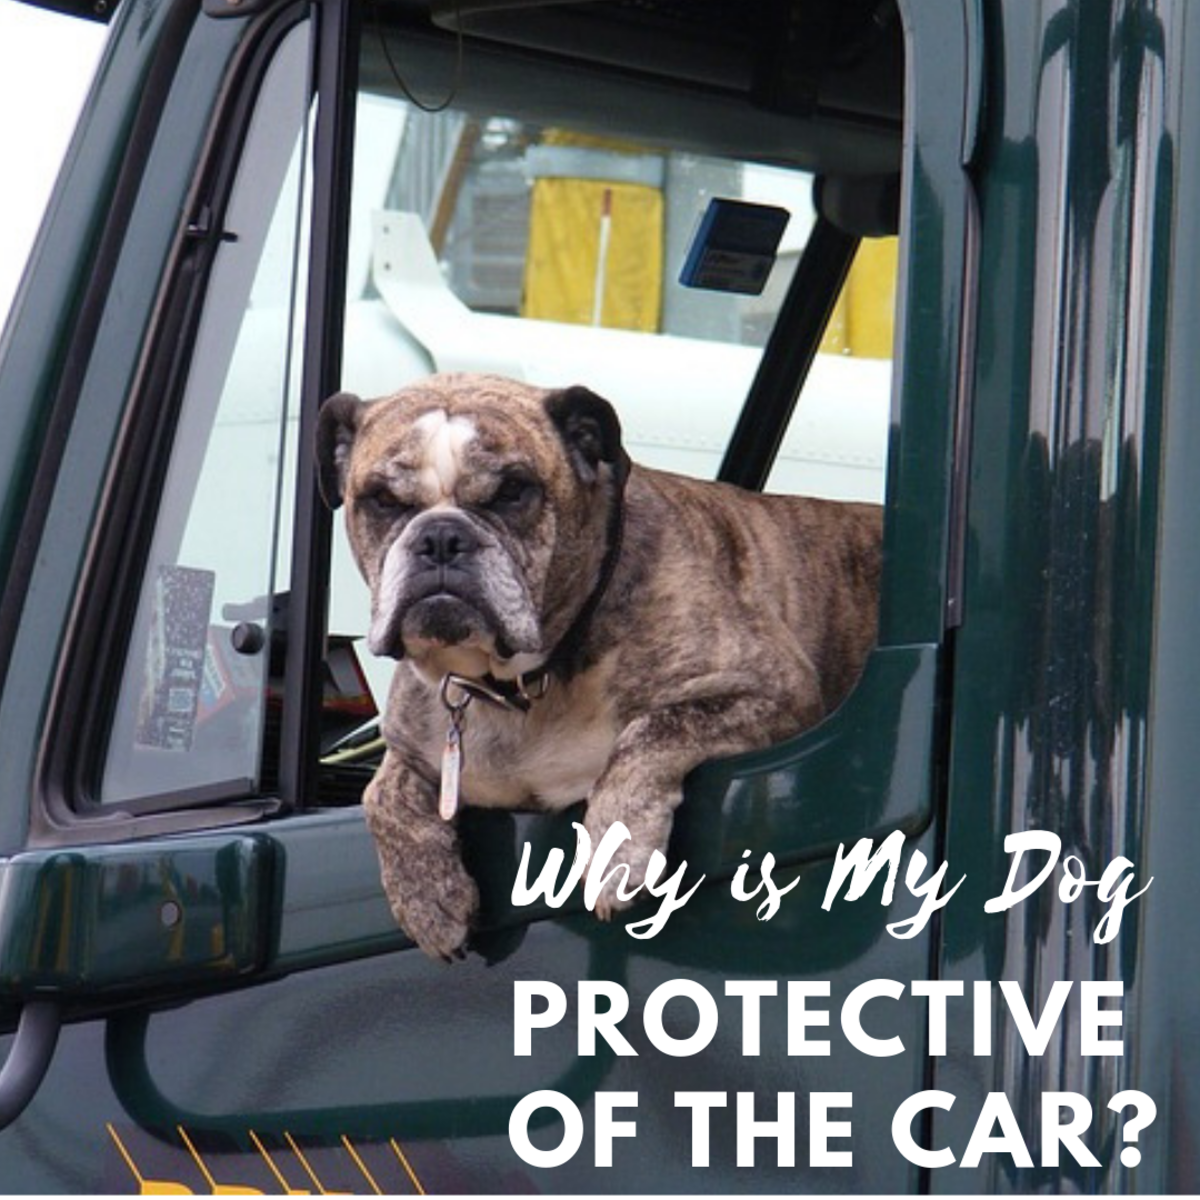 How to Stop a Dog From Acting Protective of the Car